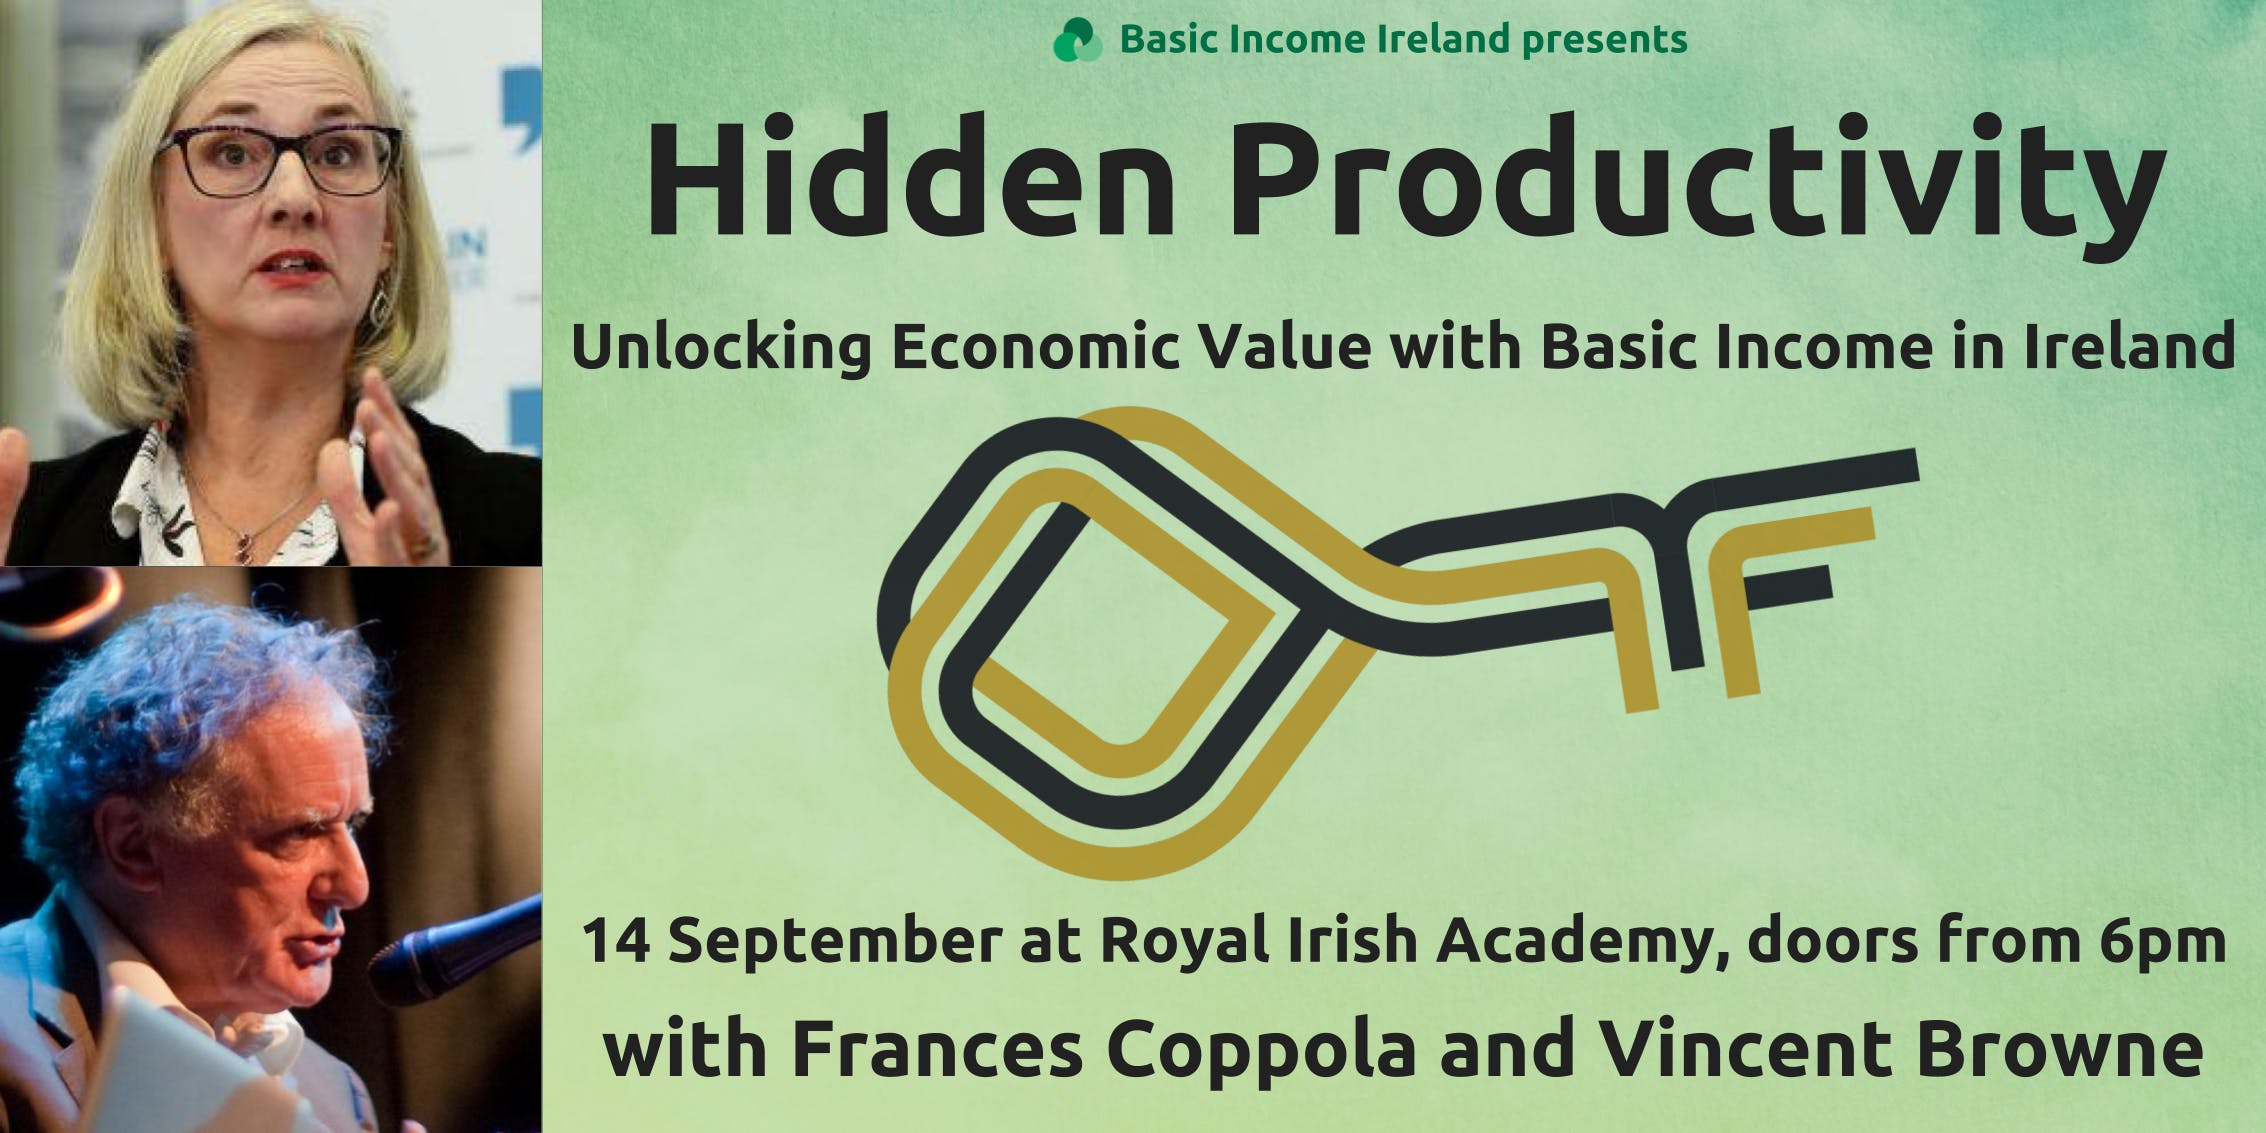 Hidden Productivity - Unlocking Economic Value with Basic Income in Ireland